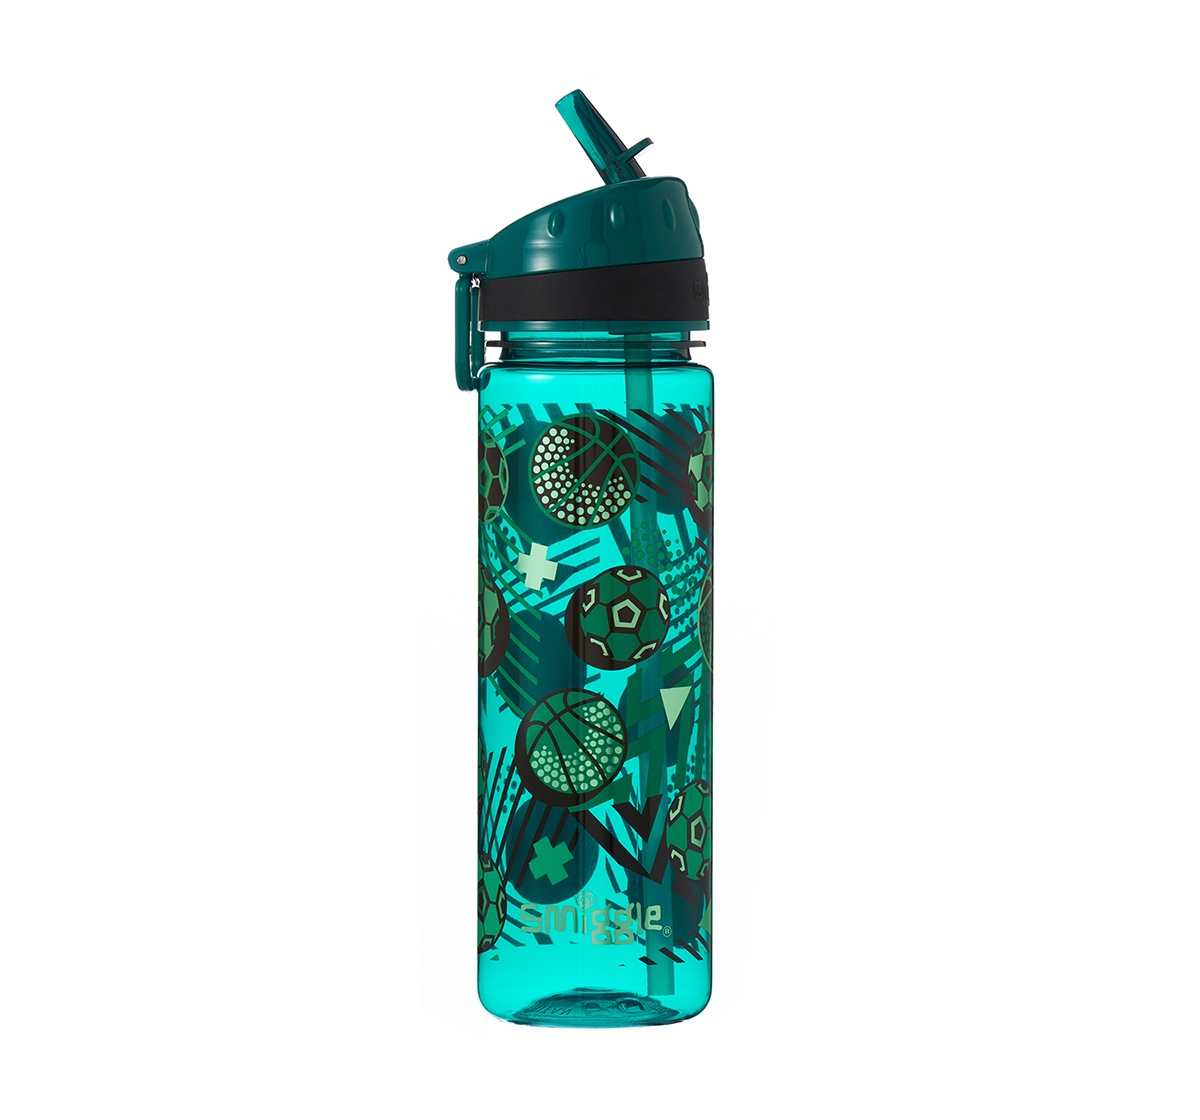 Smiggle | Smiggle Flow Drink Bottle with Flip Top Spout Football Print Bags for Kids age 3Y+ (Green)